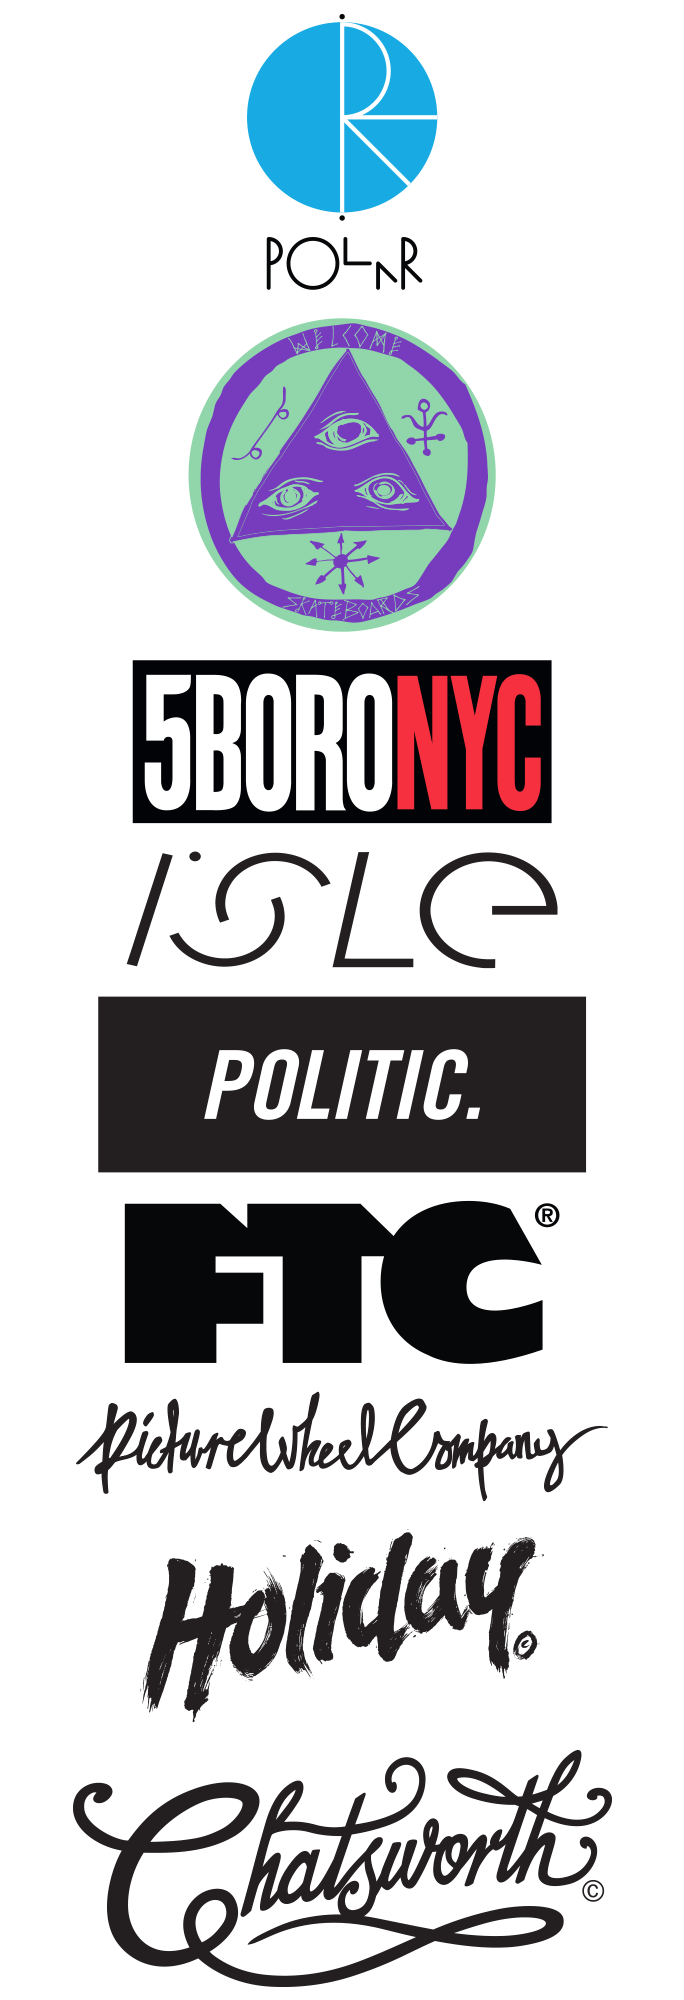 welcome skateboards politic. picture wheel company polar isle holiday 5boronyc ftc chatsworth